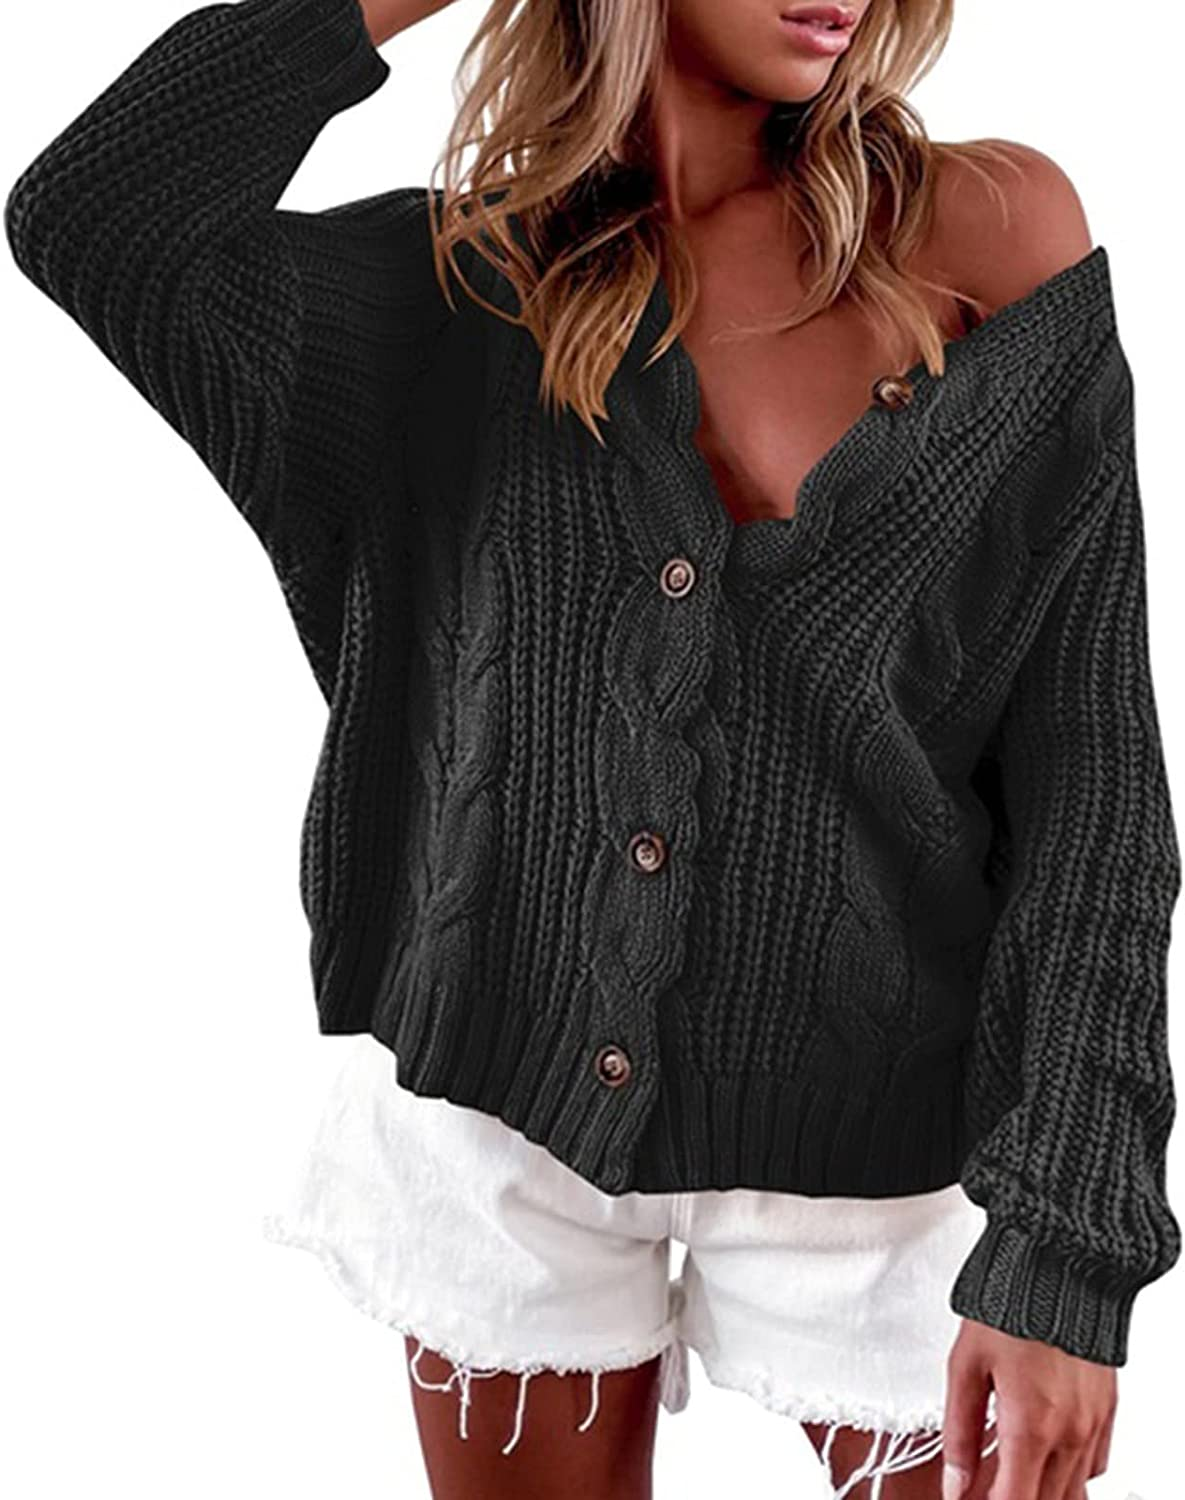 ZDFER Womens Open Front Button Down Cardigan Sweaters Tops Long Sleeve Hollow Casual Chunky Knit Loose Cozy Outwear Coat